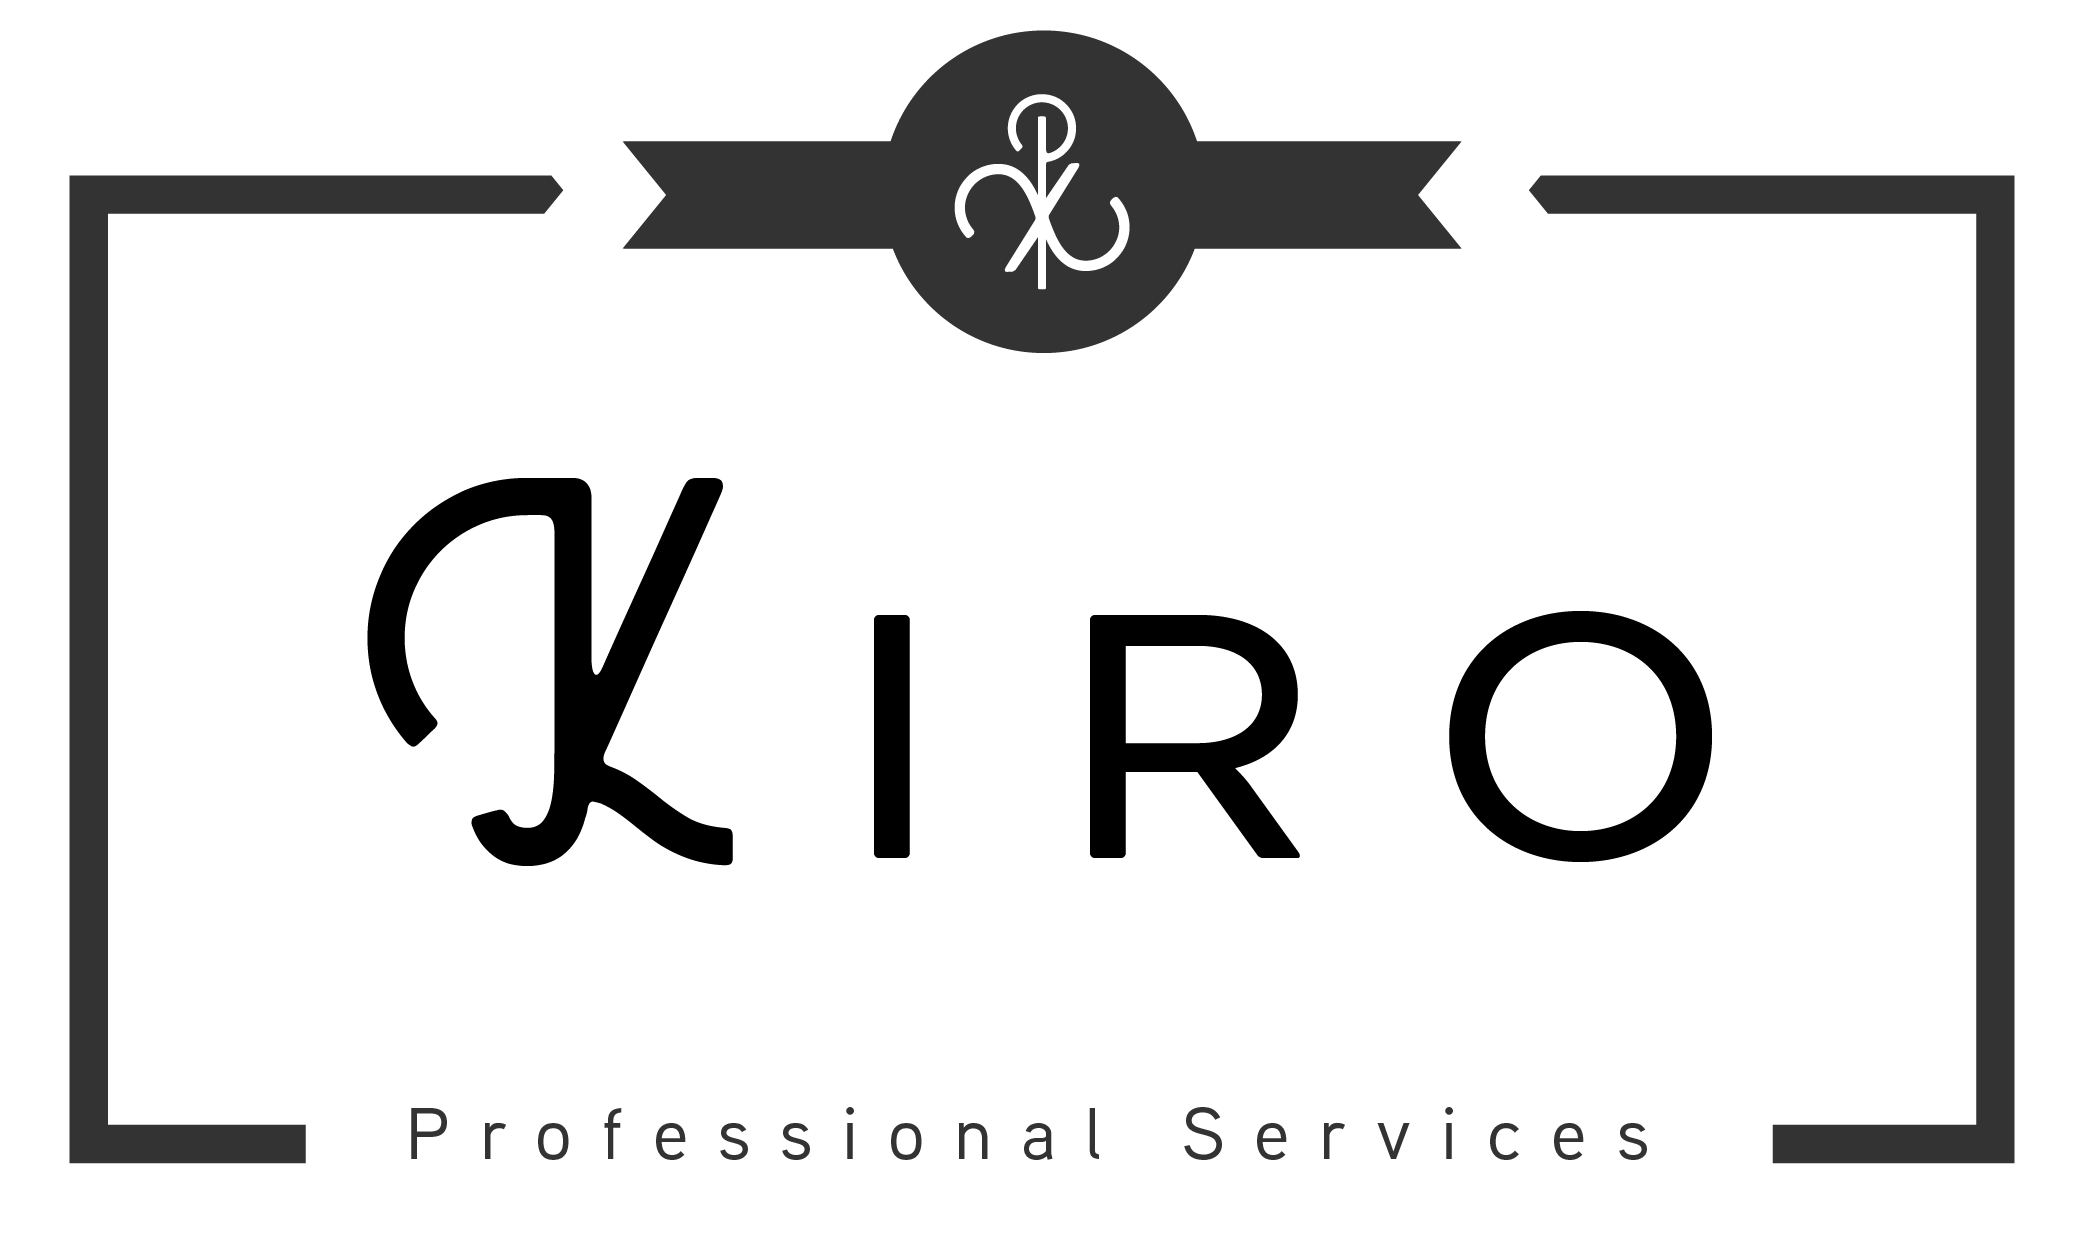 Kiro Professional Services